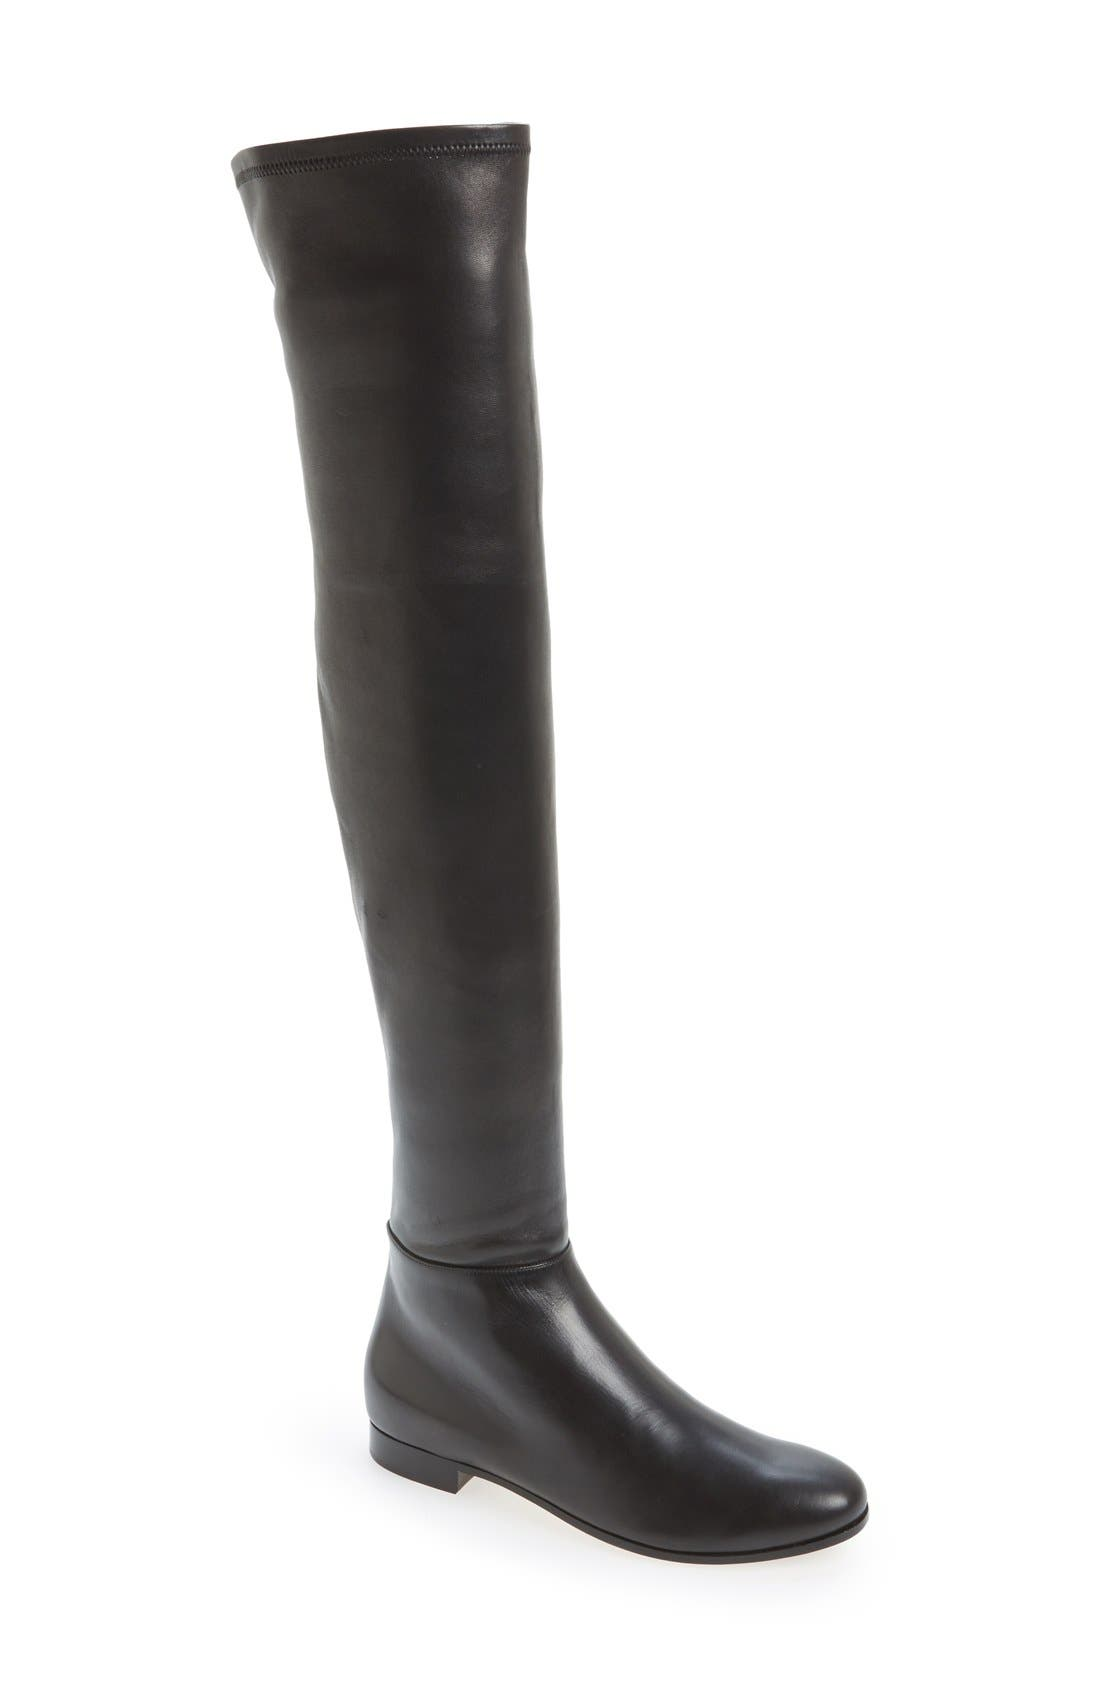 Alternate Image 1 Selected - Jimmy Choo 'Myren' Over the Knee Boot (Women)